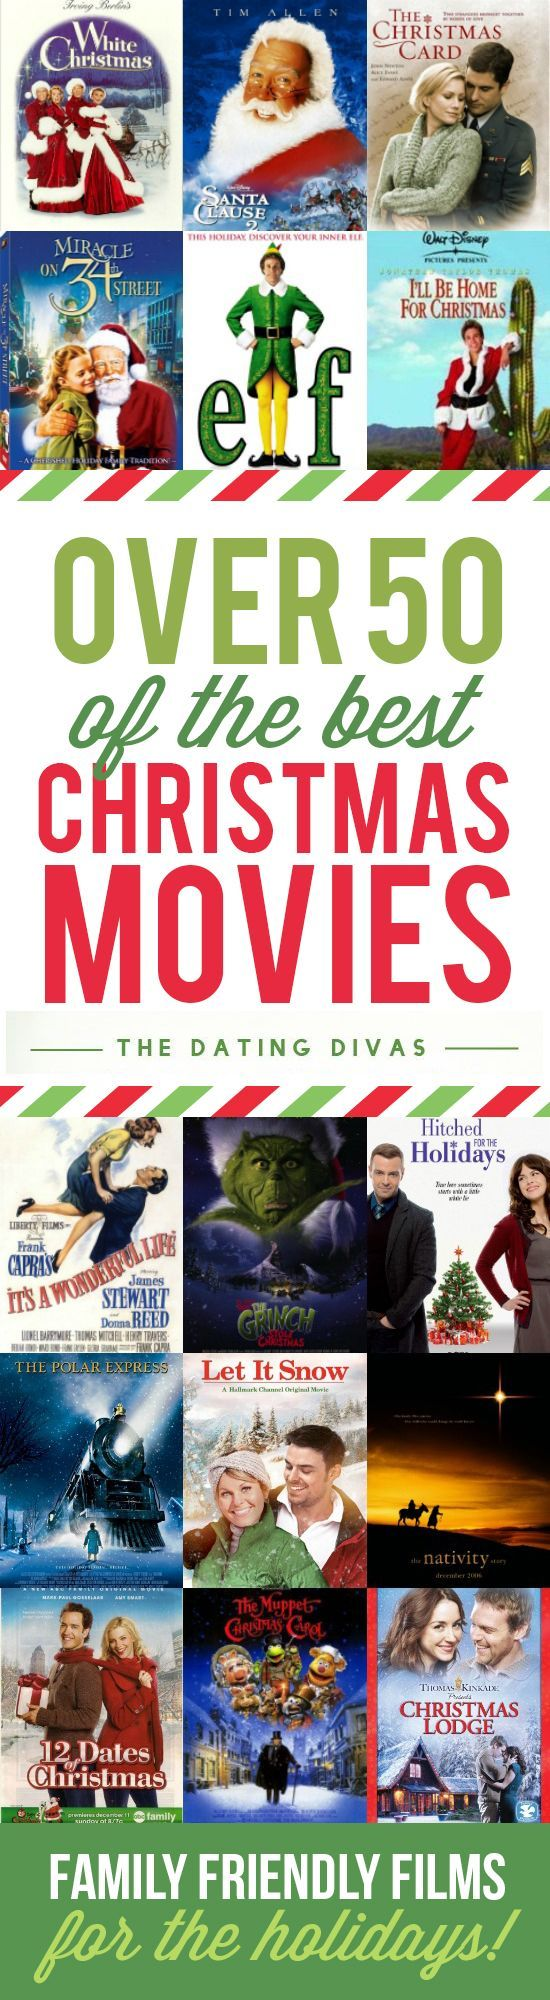 50 of the best christmas movies all in one place these are family friendly films that are perfect for the holiday season i think its time for a christmas - Best Christmas Movie On Netflix